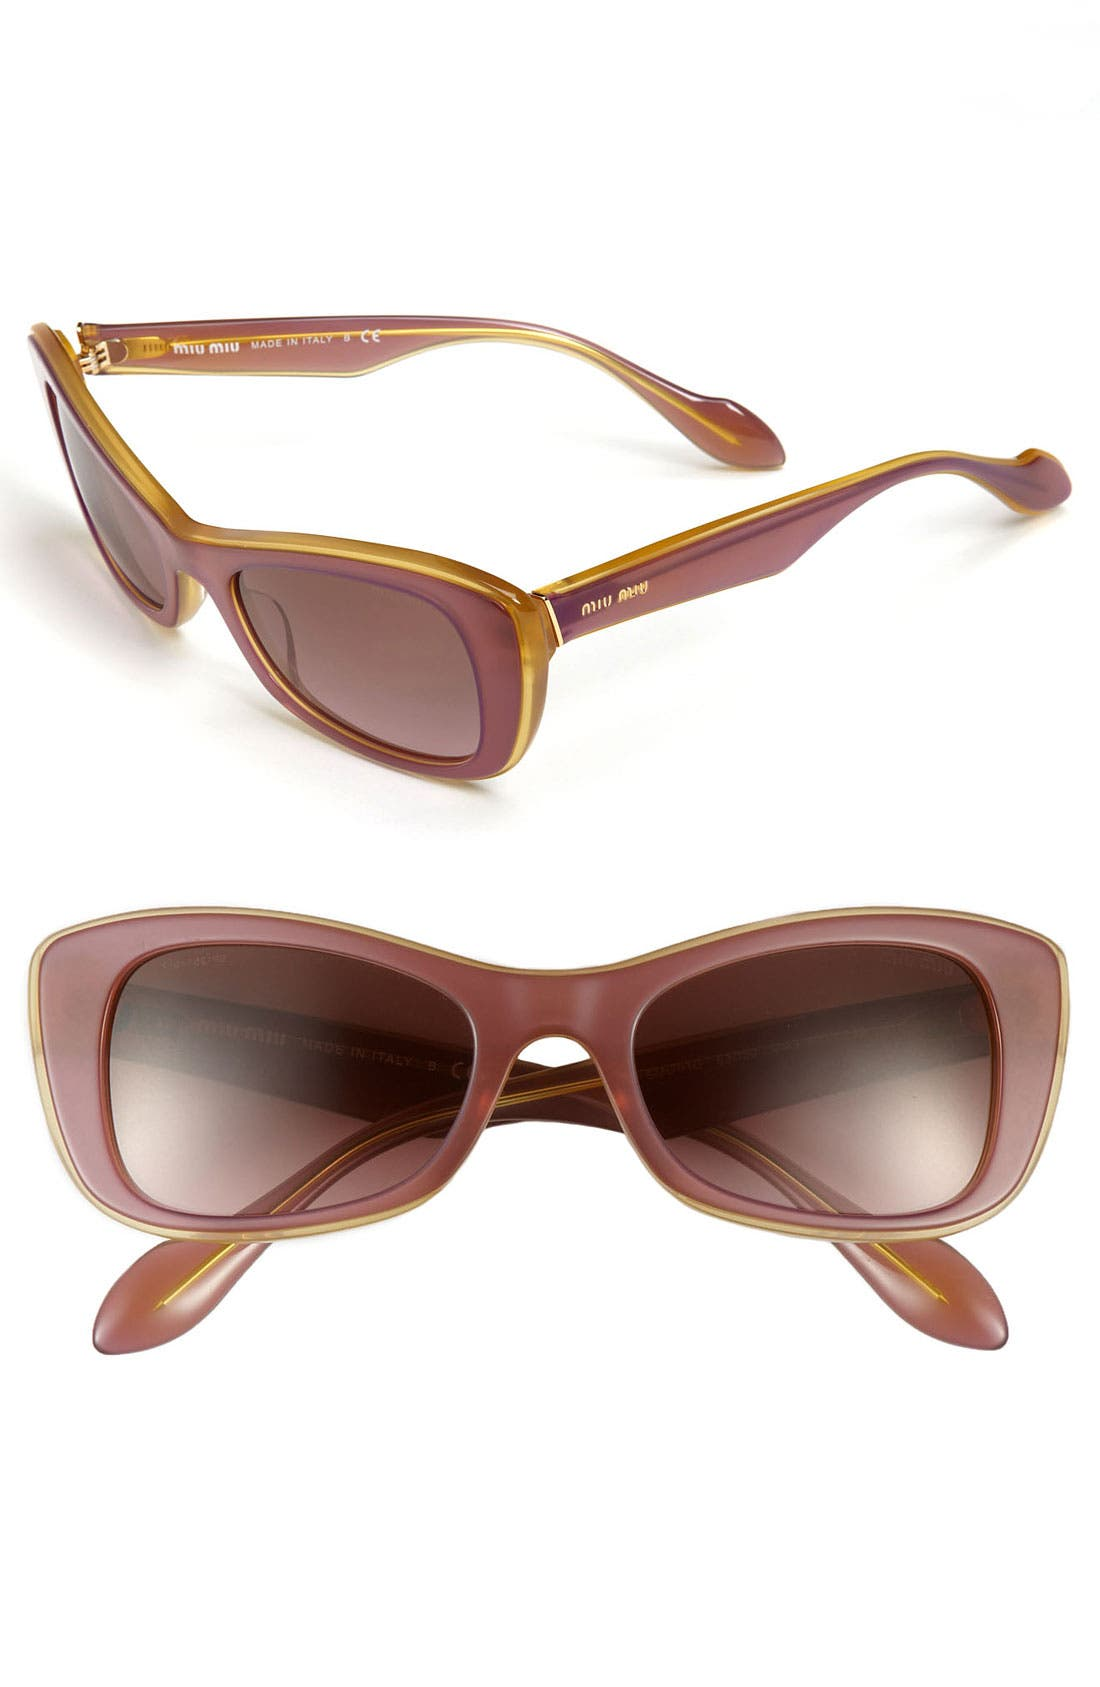 Alternate Image 1 Selected - Miu Miu Butterfly Sunglasses